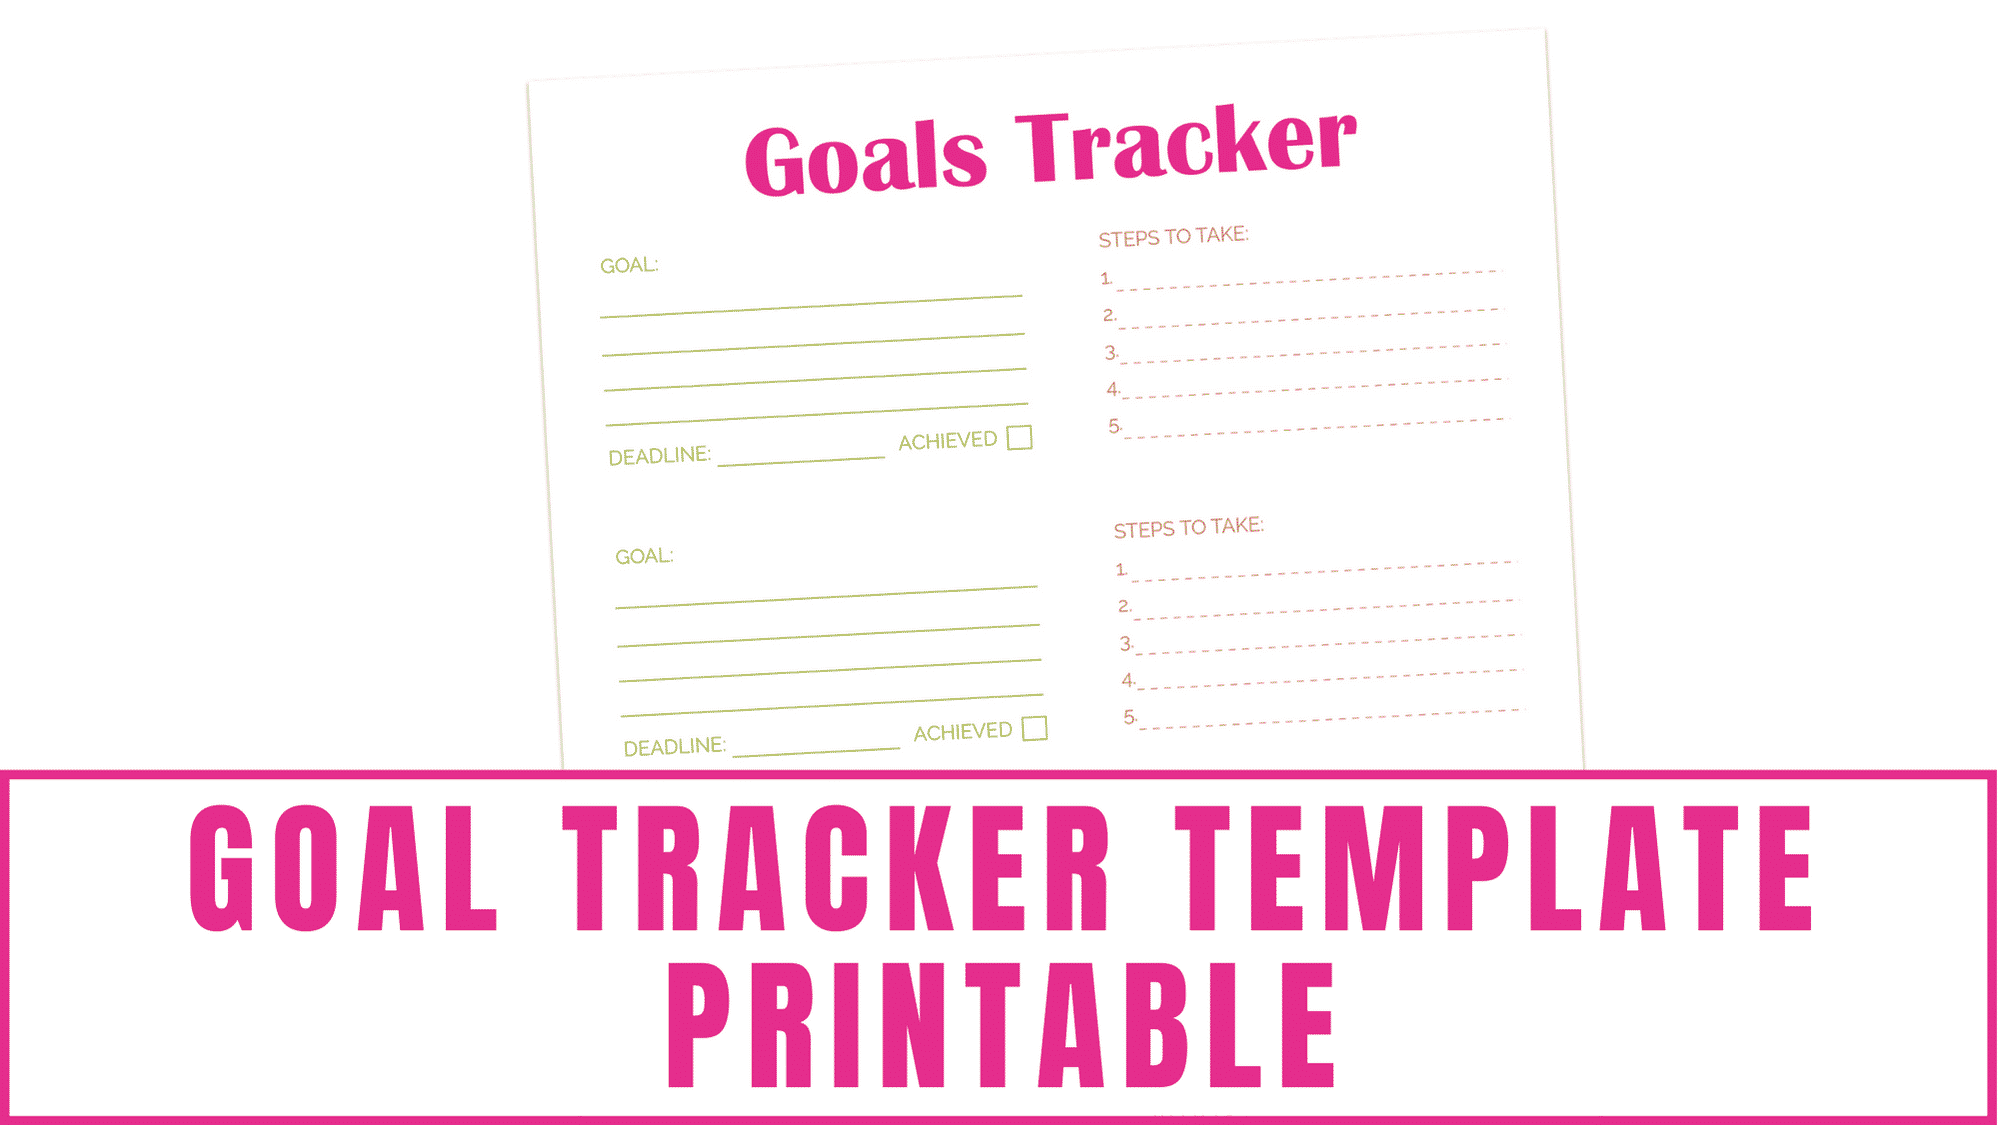 Do you set goals? Whether it's personal, professional, budgeting, or back to school goals this goal tracker template printable will allow you to record and track them so you have the highest probability of success.